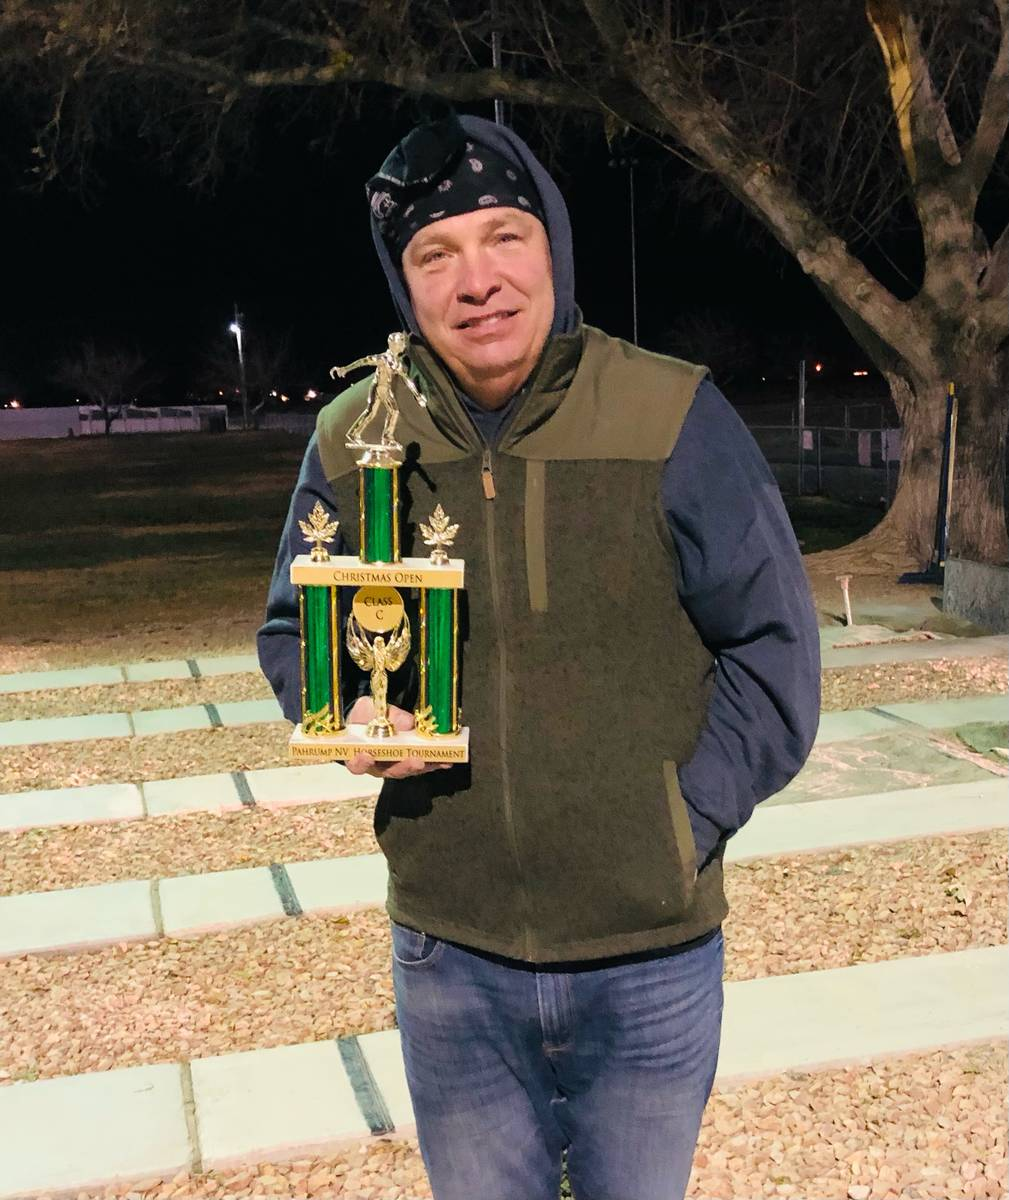 Lathan Dilger/Special to the Pahrump Valley Times Gary Dilger with his trophy for winning the C ...